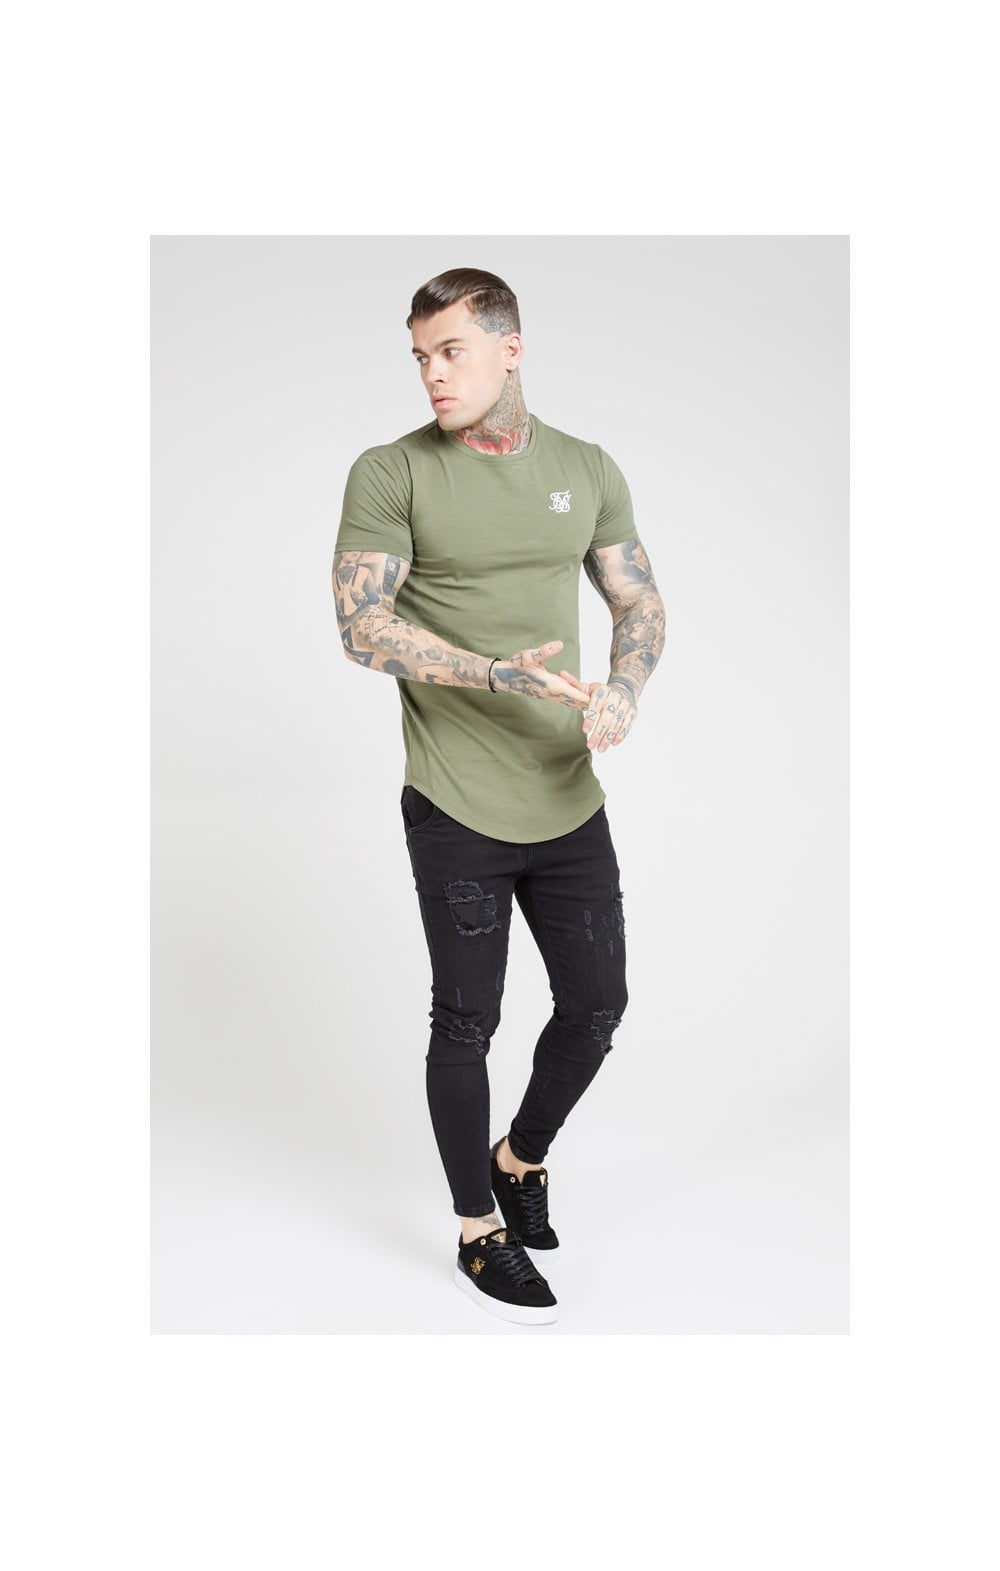 SikSilk S/S Core Gym Tee – Khaki (2)